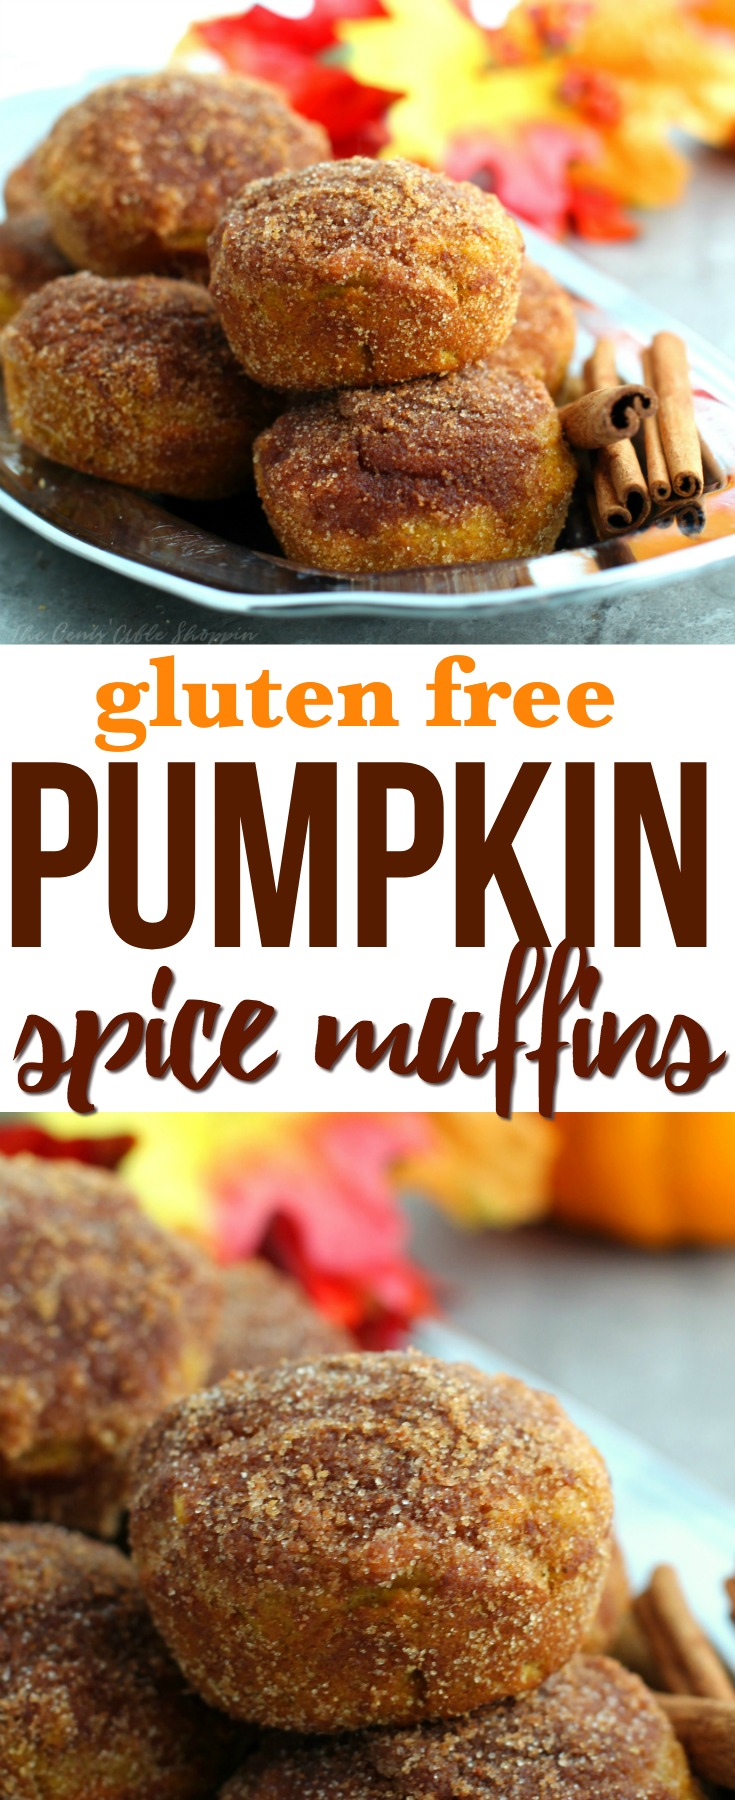 These Gluten Free Pumpkin Spice Muffins are soft, fluffy and sweet - made with the perfect amount of pumpkin spice. The perfect way to welcome fall!